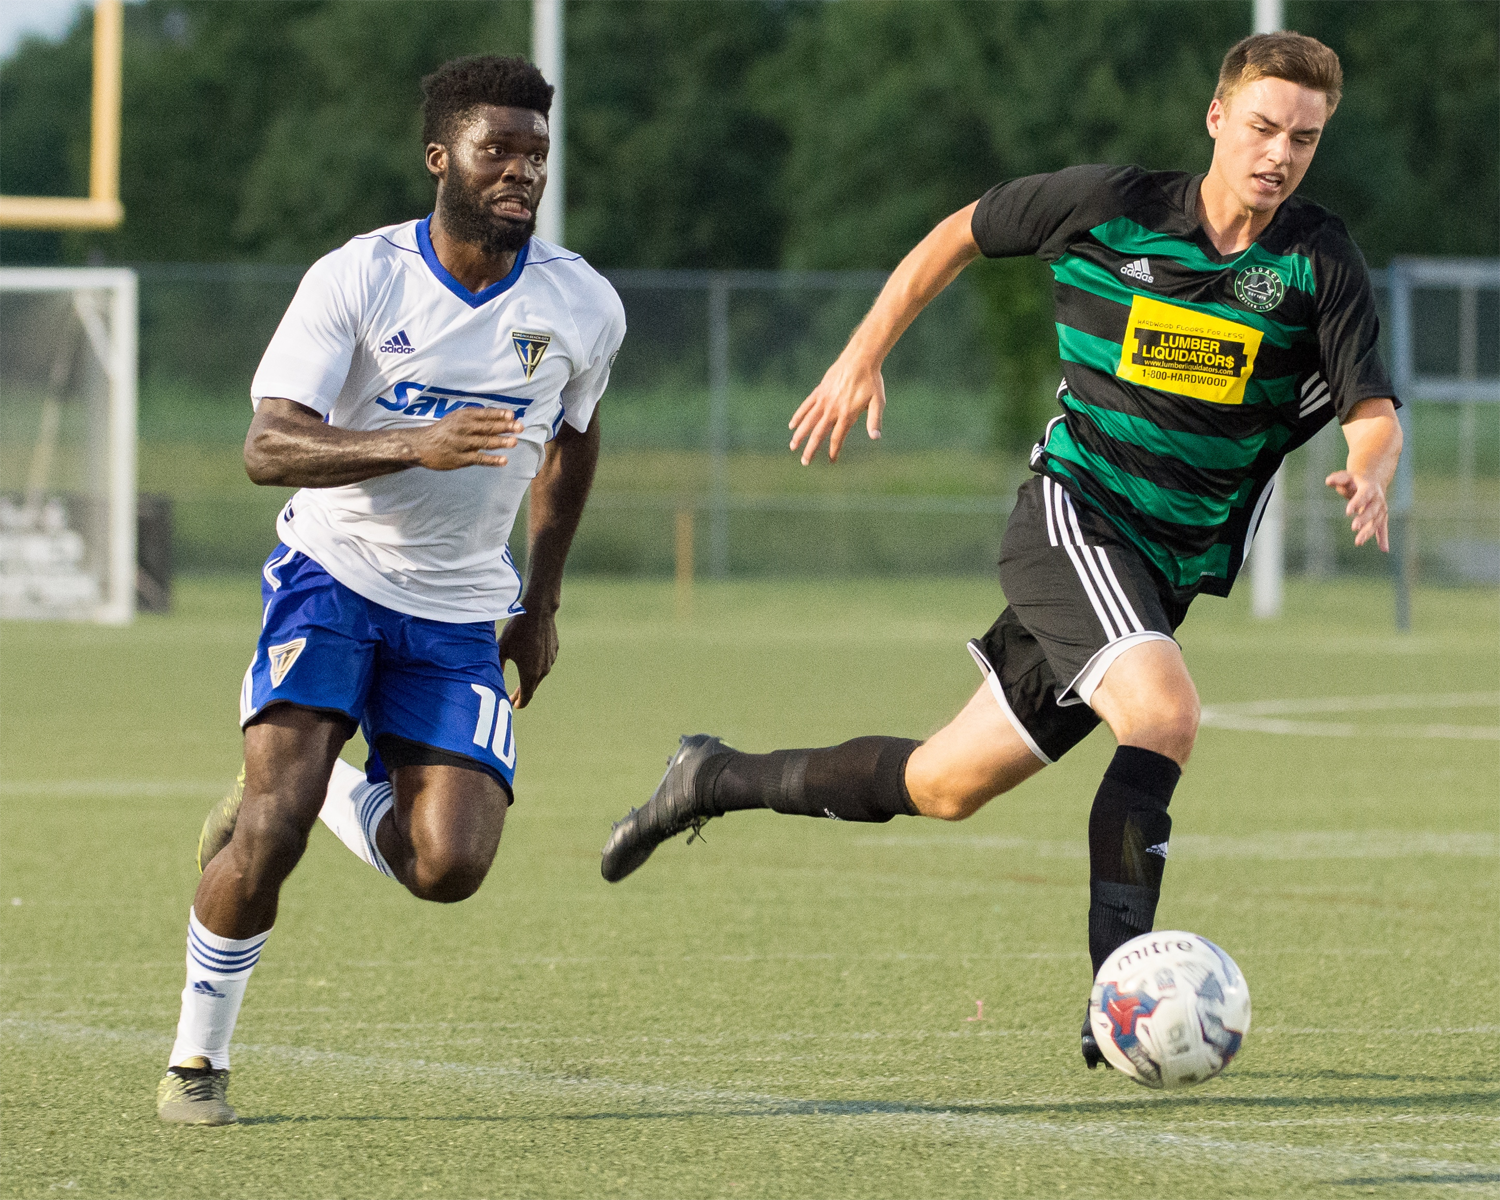 Virginia Beach City FC Look to Stay Unbeaten in League Play on Father's Day